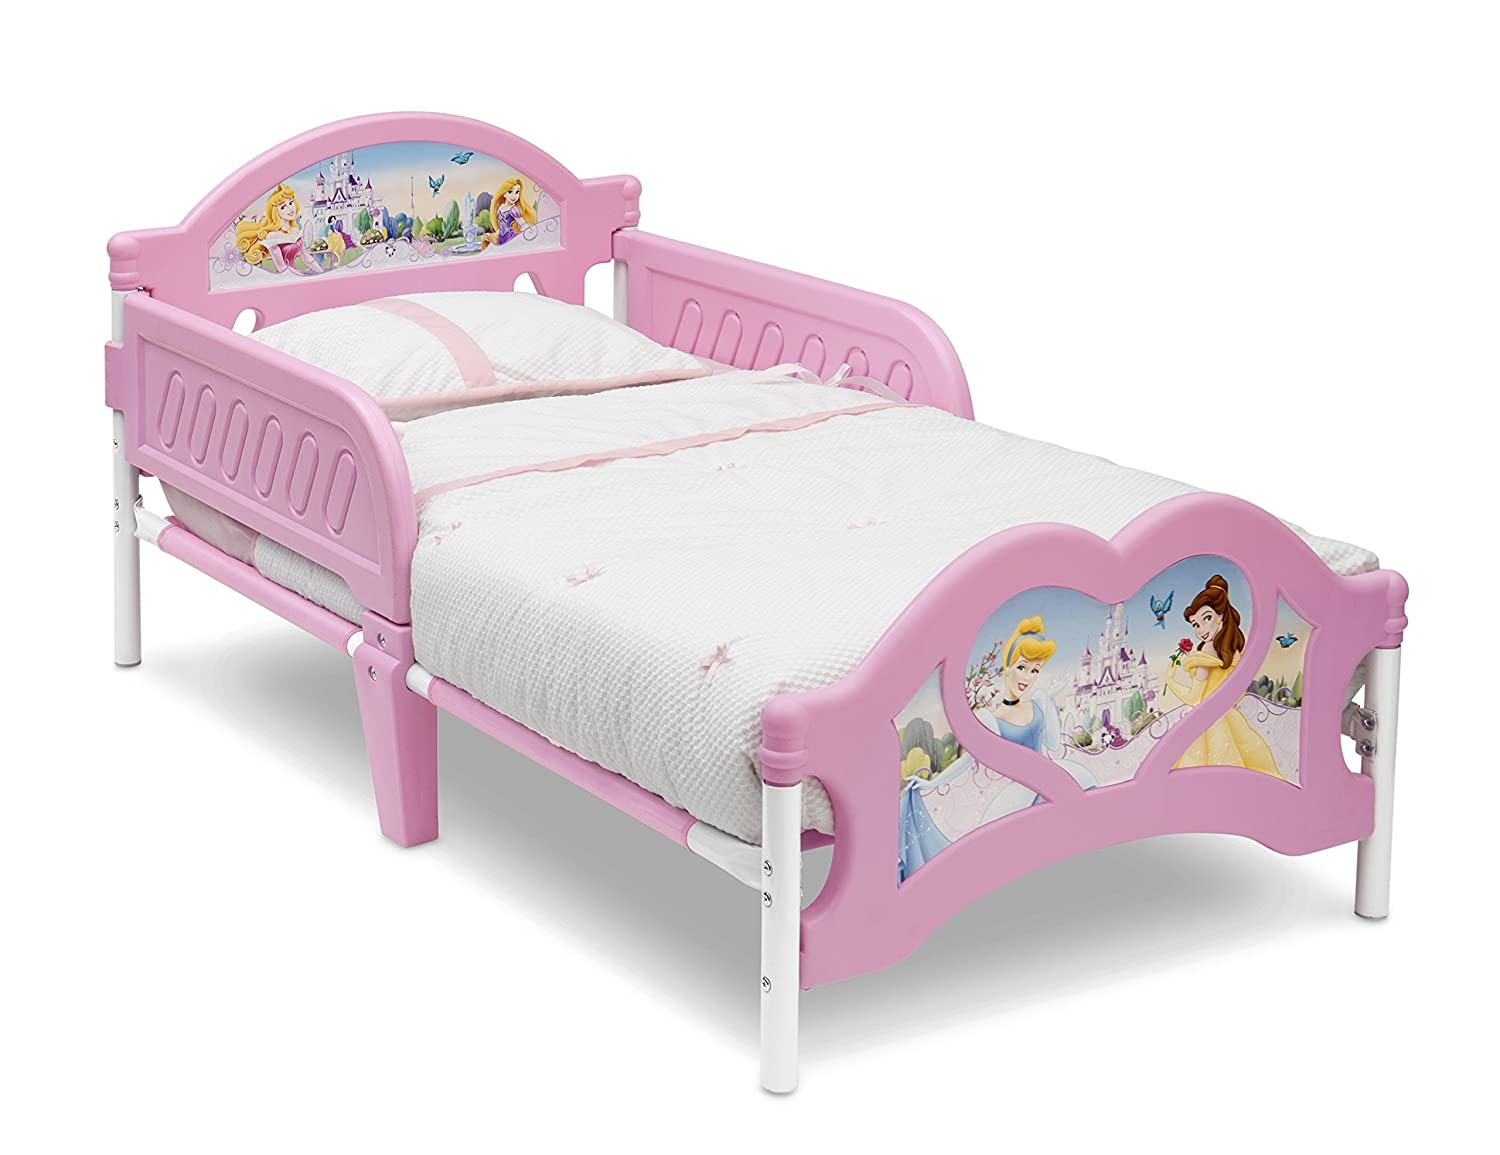 house woodhouse build room jen pin plans cheap a bed toddler to by how diy and beds